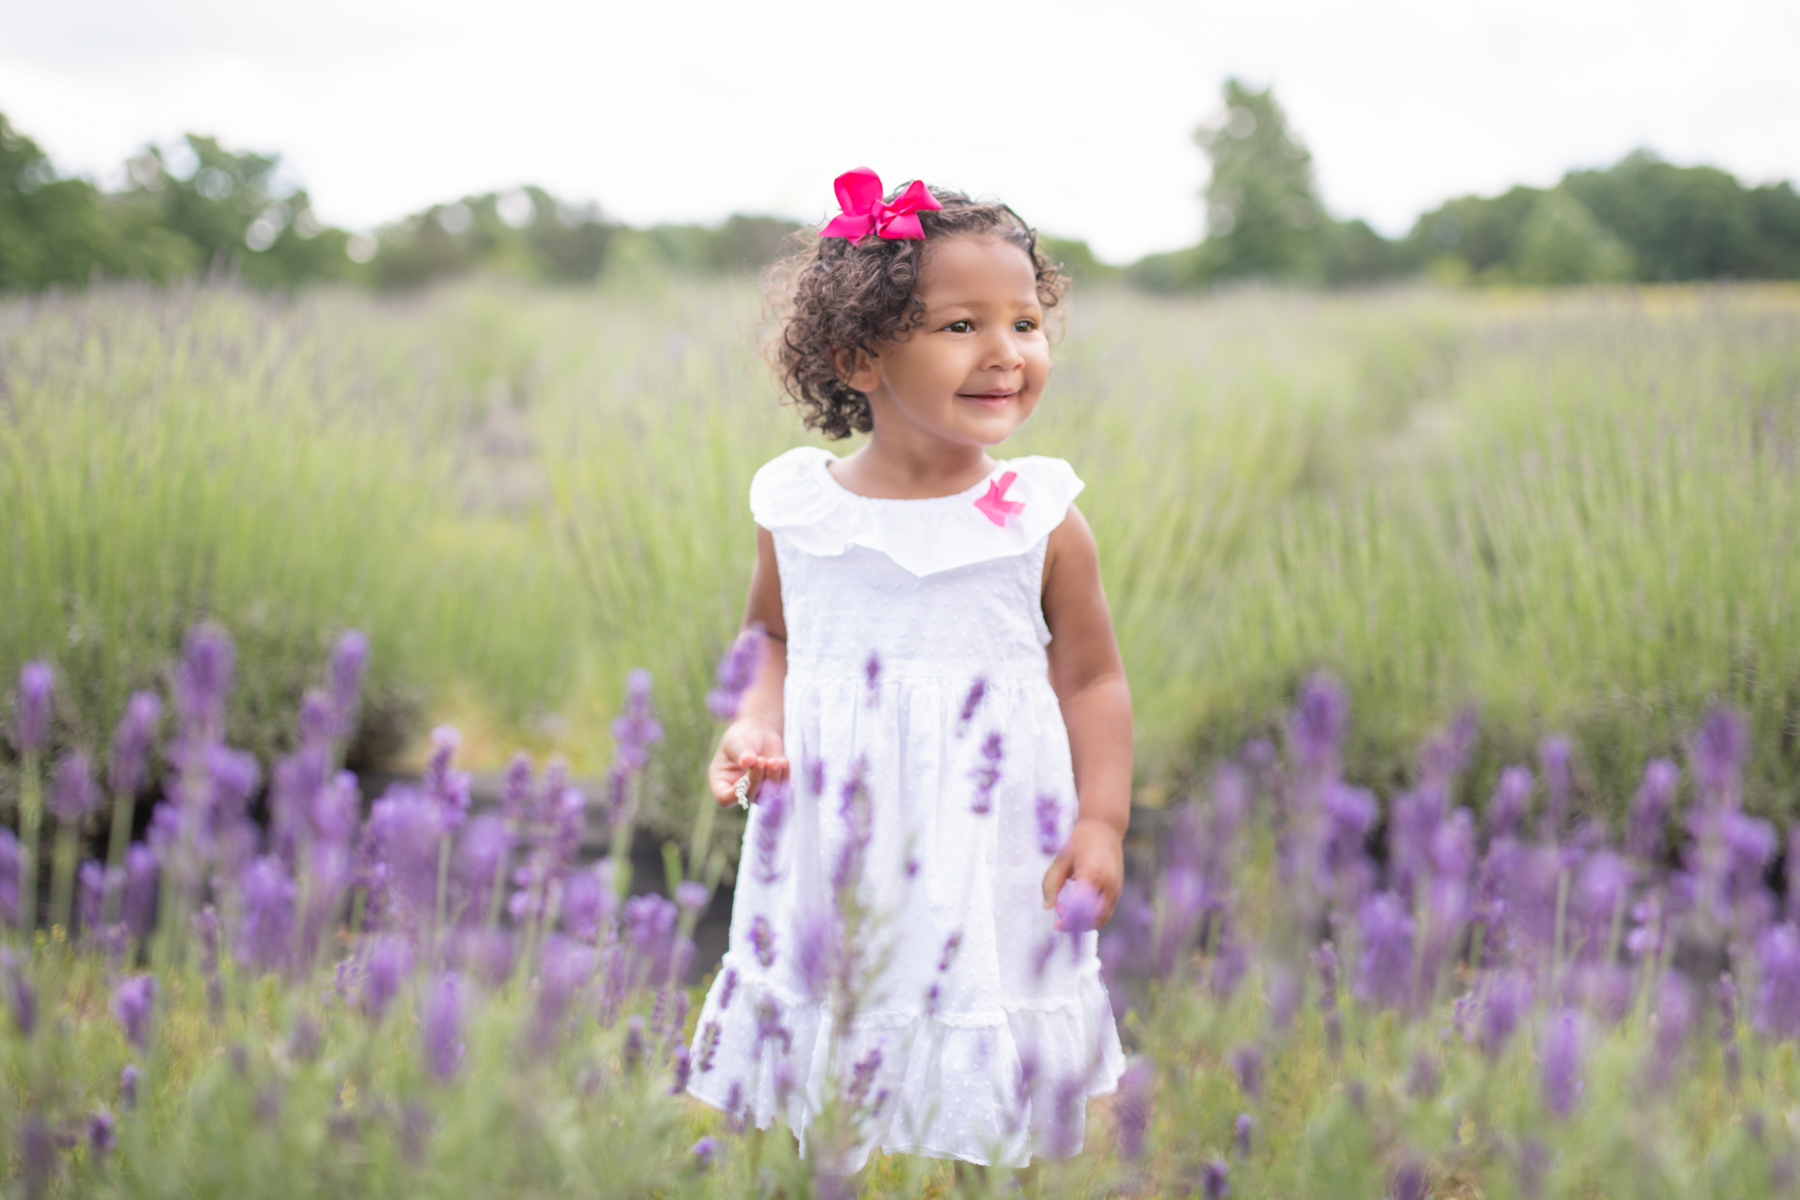 chattanooga lavender field mini session, baby photography chattanooga, chattanooga photography, chattanooga toddler photography, lookout mountain photography, lookout lavender, lookout mountain baby photography, chattanooga photos, chattanooga photography, baby photographer, toddler photographer, newborn photographer, lavender photography, lavender photos